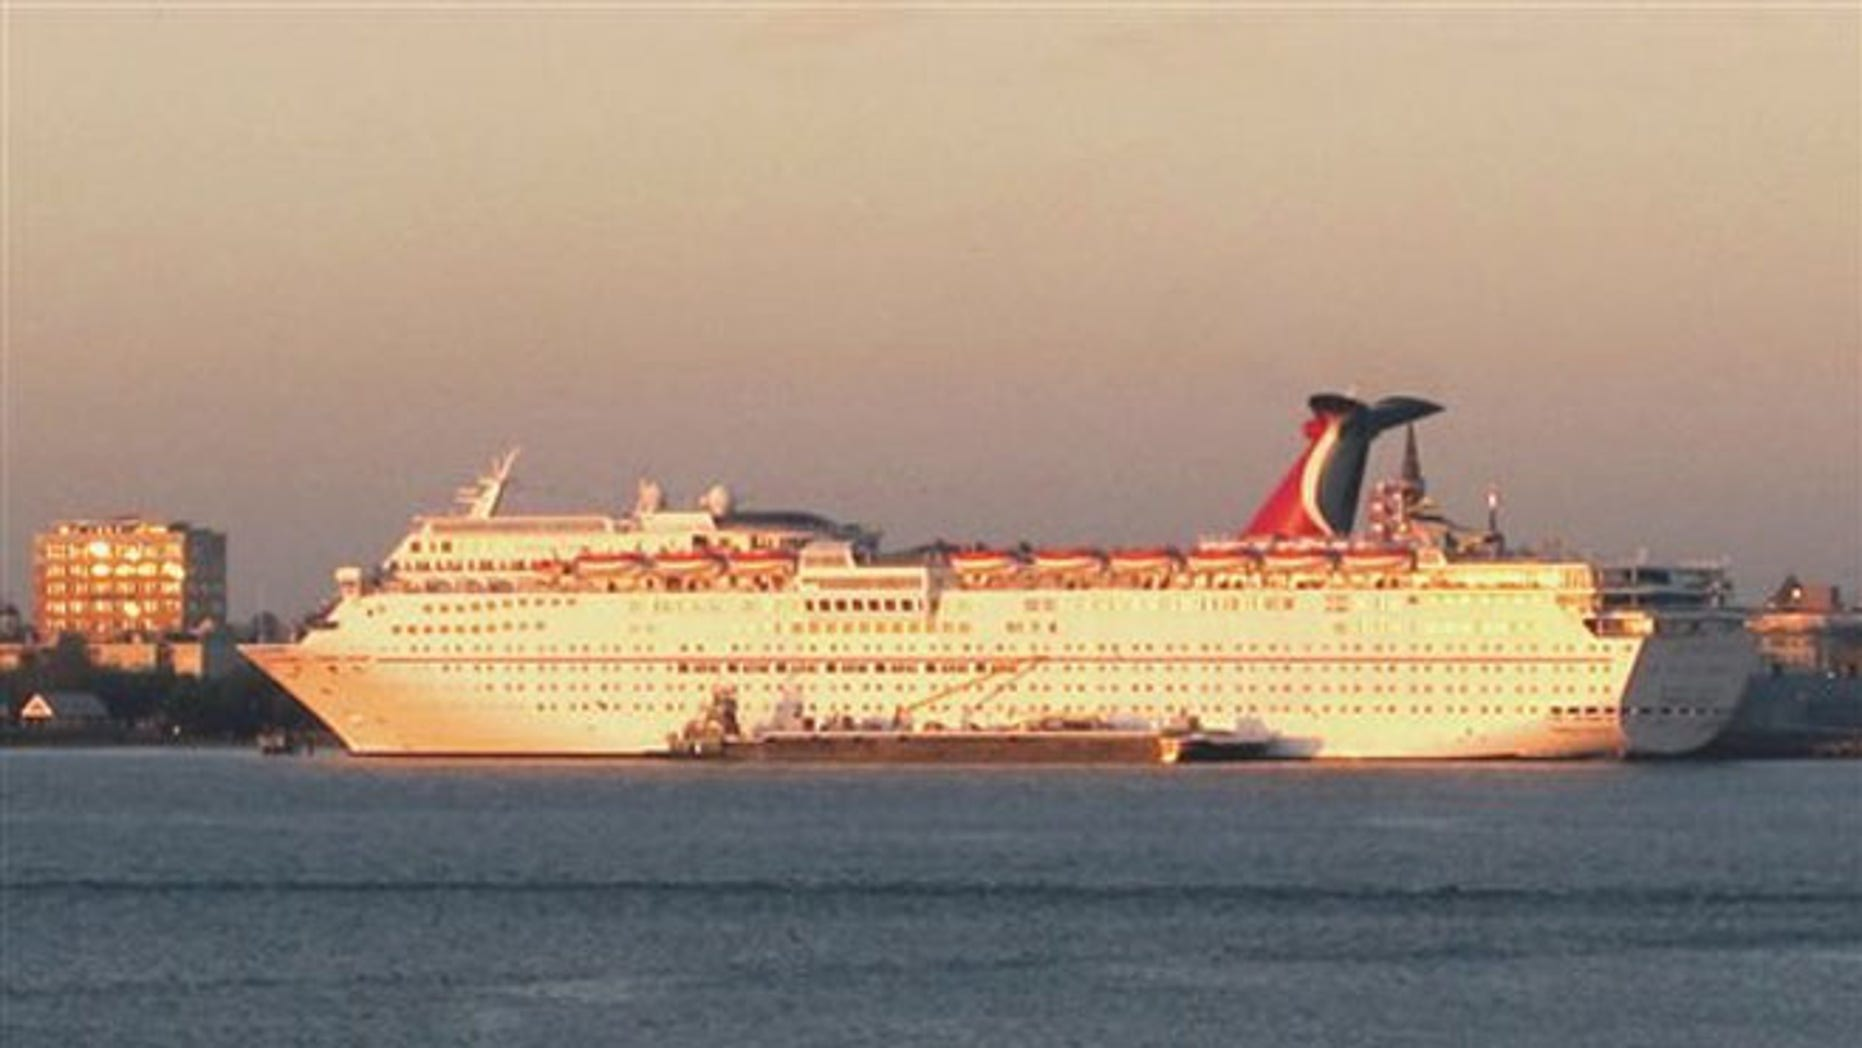 FILE: The Carnival Fantasy rests at its berth just after dawn in Charleston, S.C. South Carolina regulators on Tuesday approved a needed permit for the South Carolina State Ports Authority to build a new $35 million cruise passenger terminal.